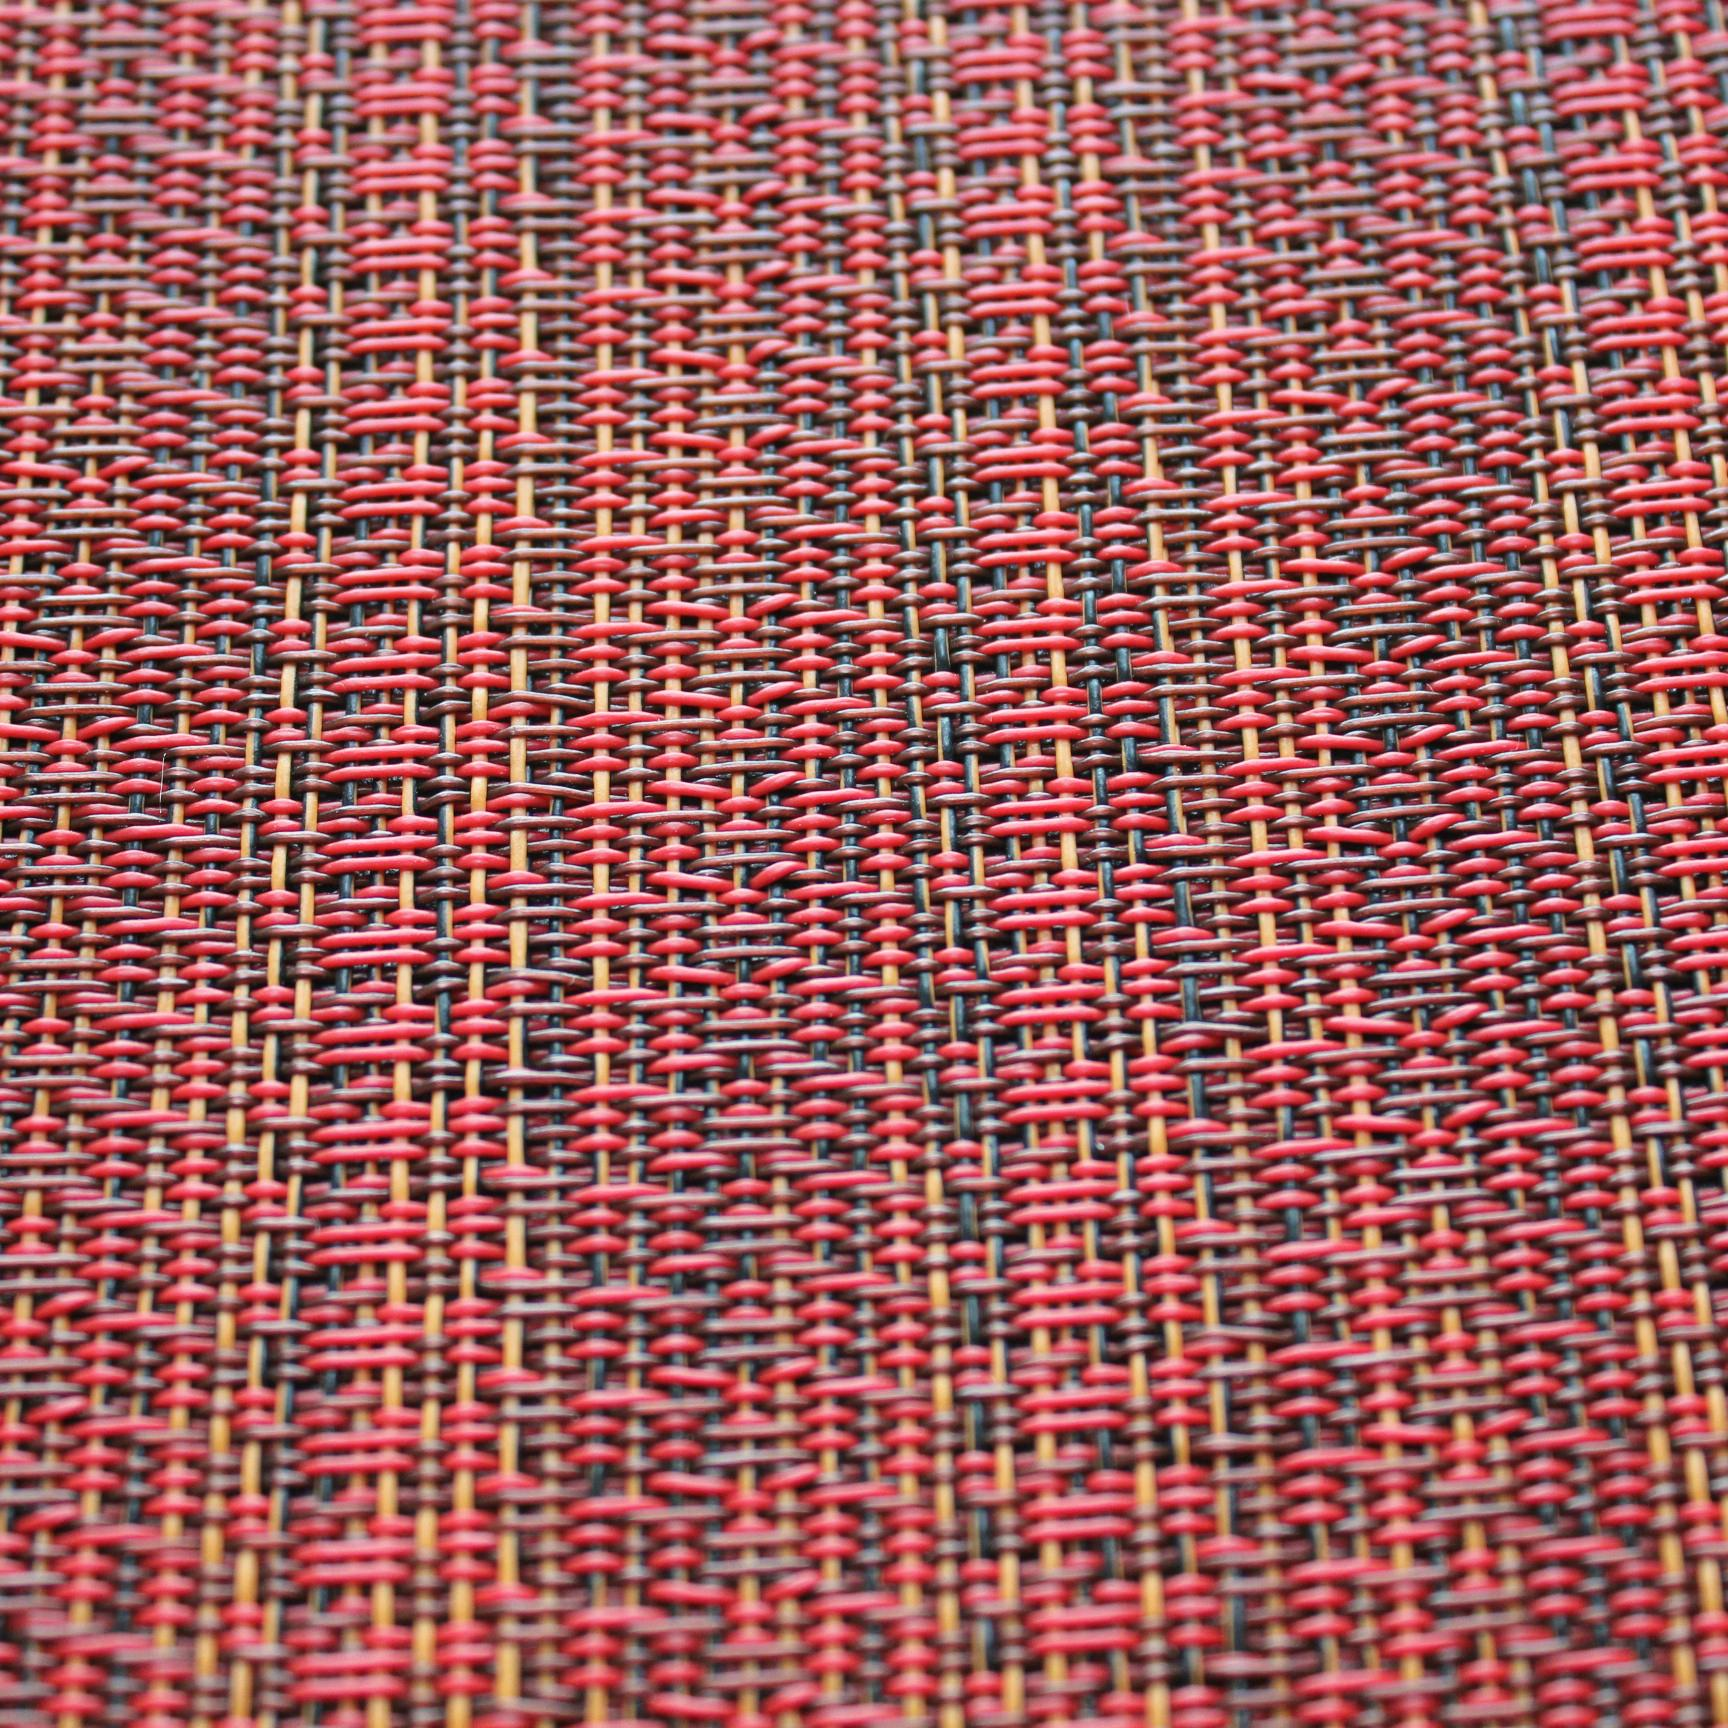 Pvc Woven Coated Fabric 22089 1